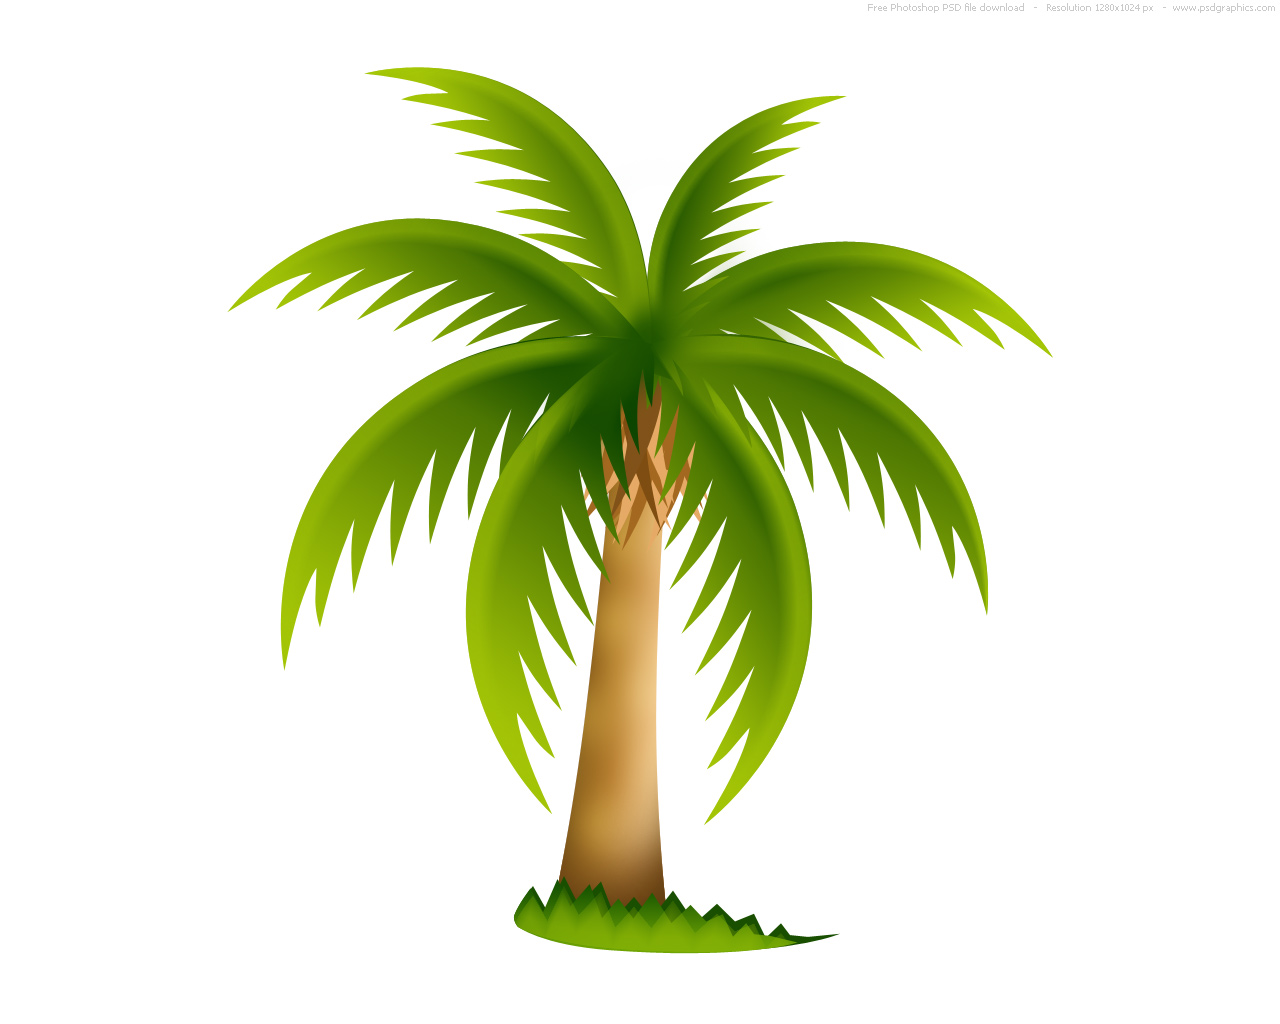 Tree Clipart | Palm Tree image - vector clip art online, royalty free u0026amp; public